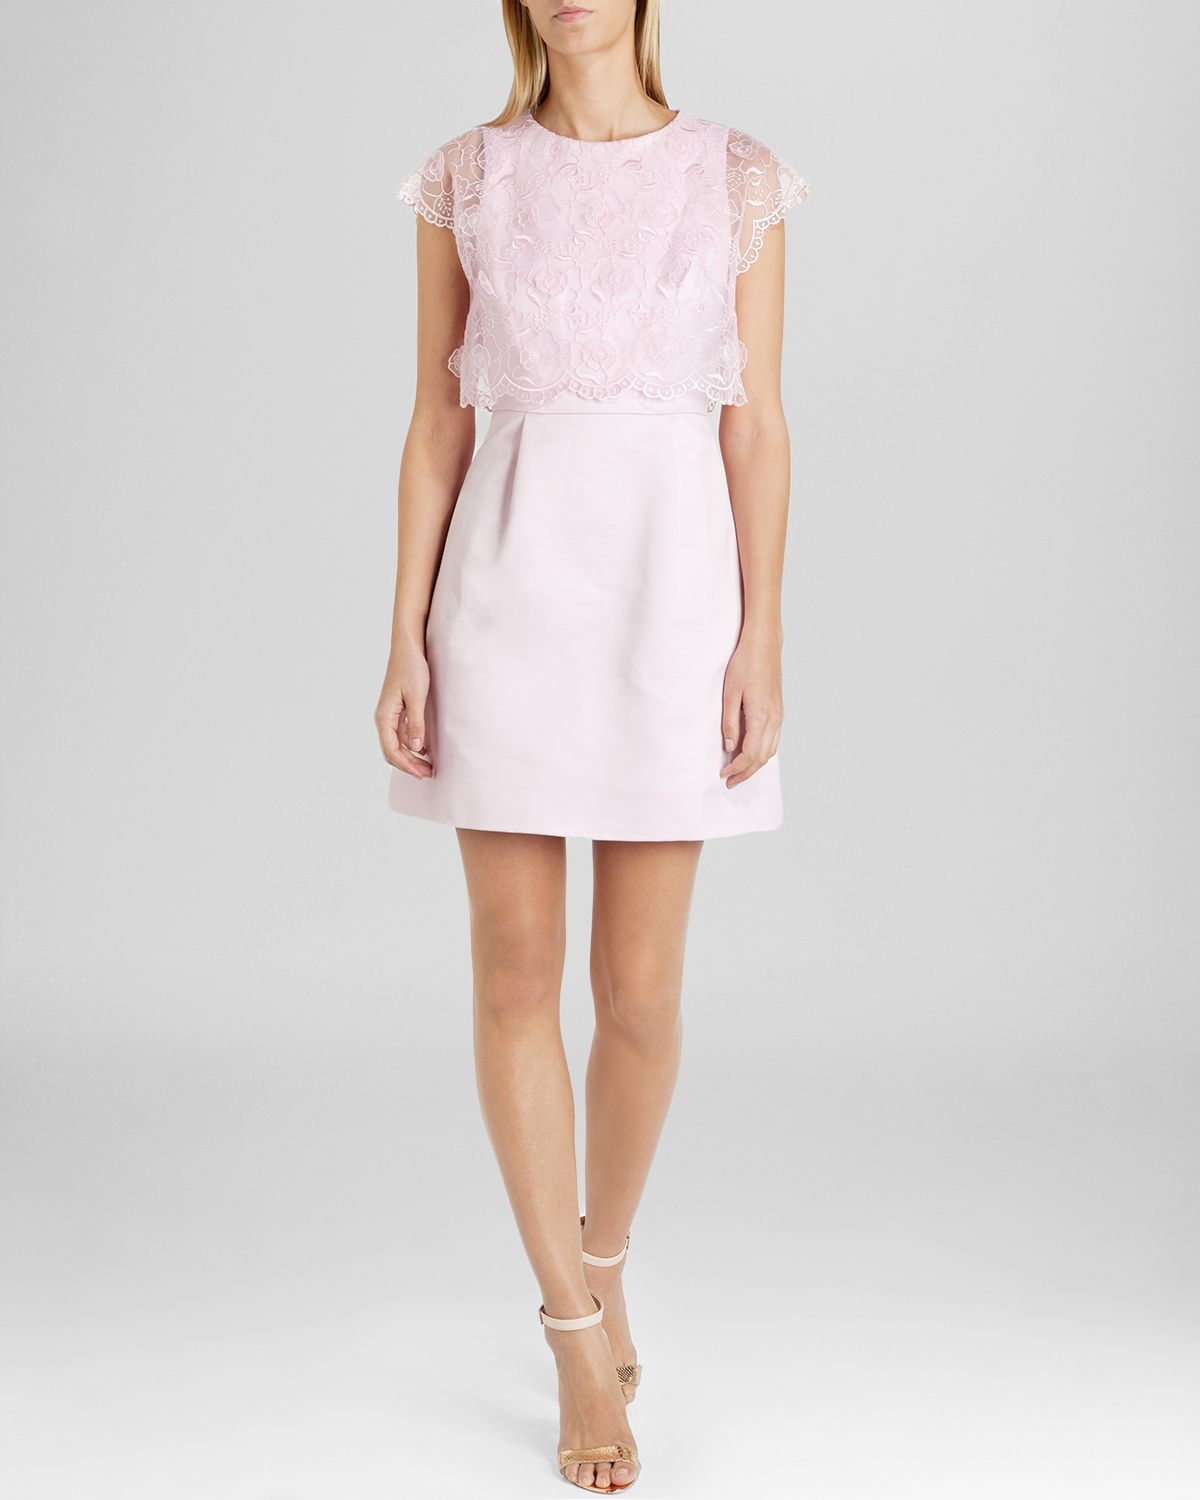 7716d6357a0fe0 Lyst - Ted Baker Dress - Dabria Floral Bodice in Pink